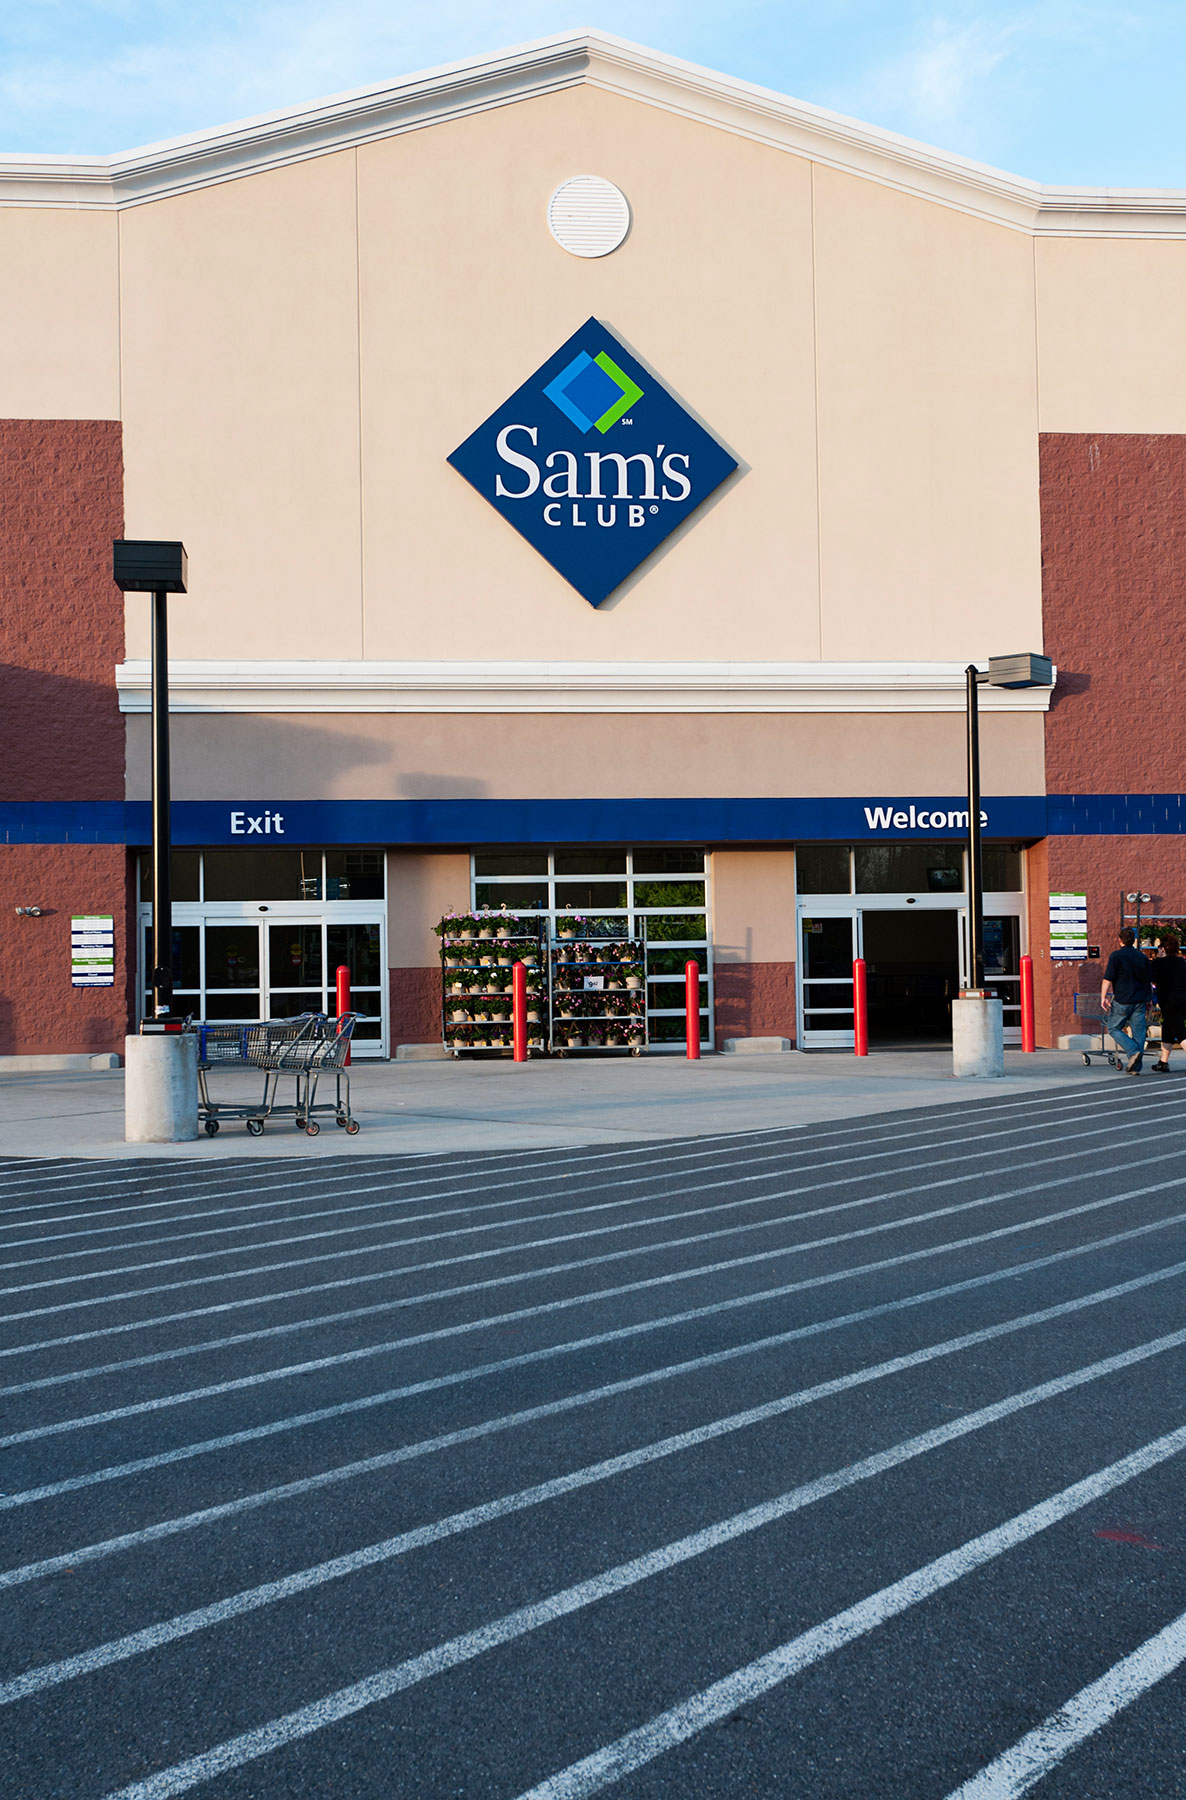 Sam's Club Entrance